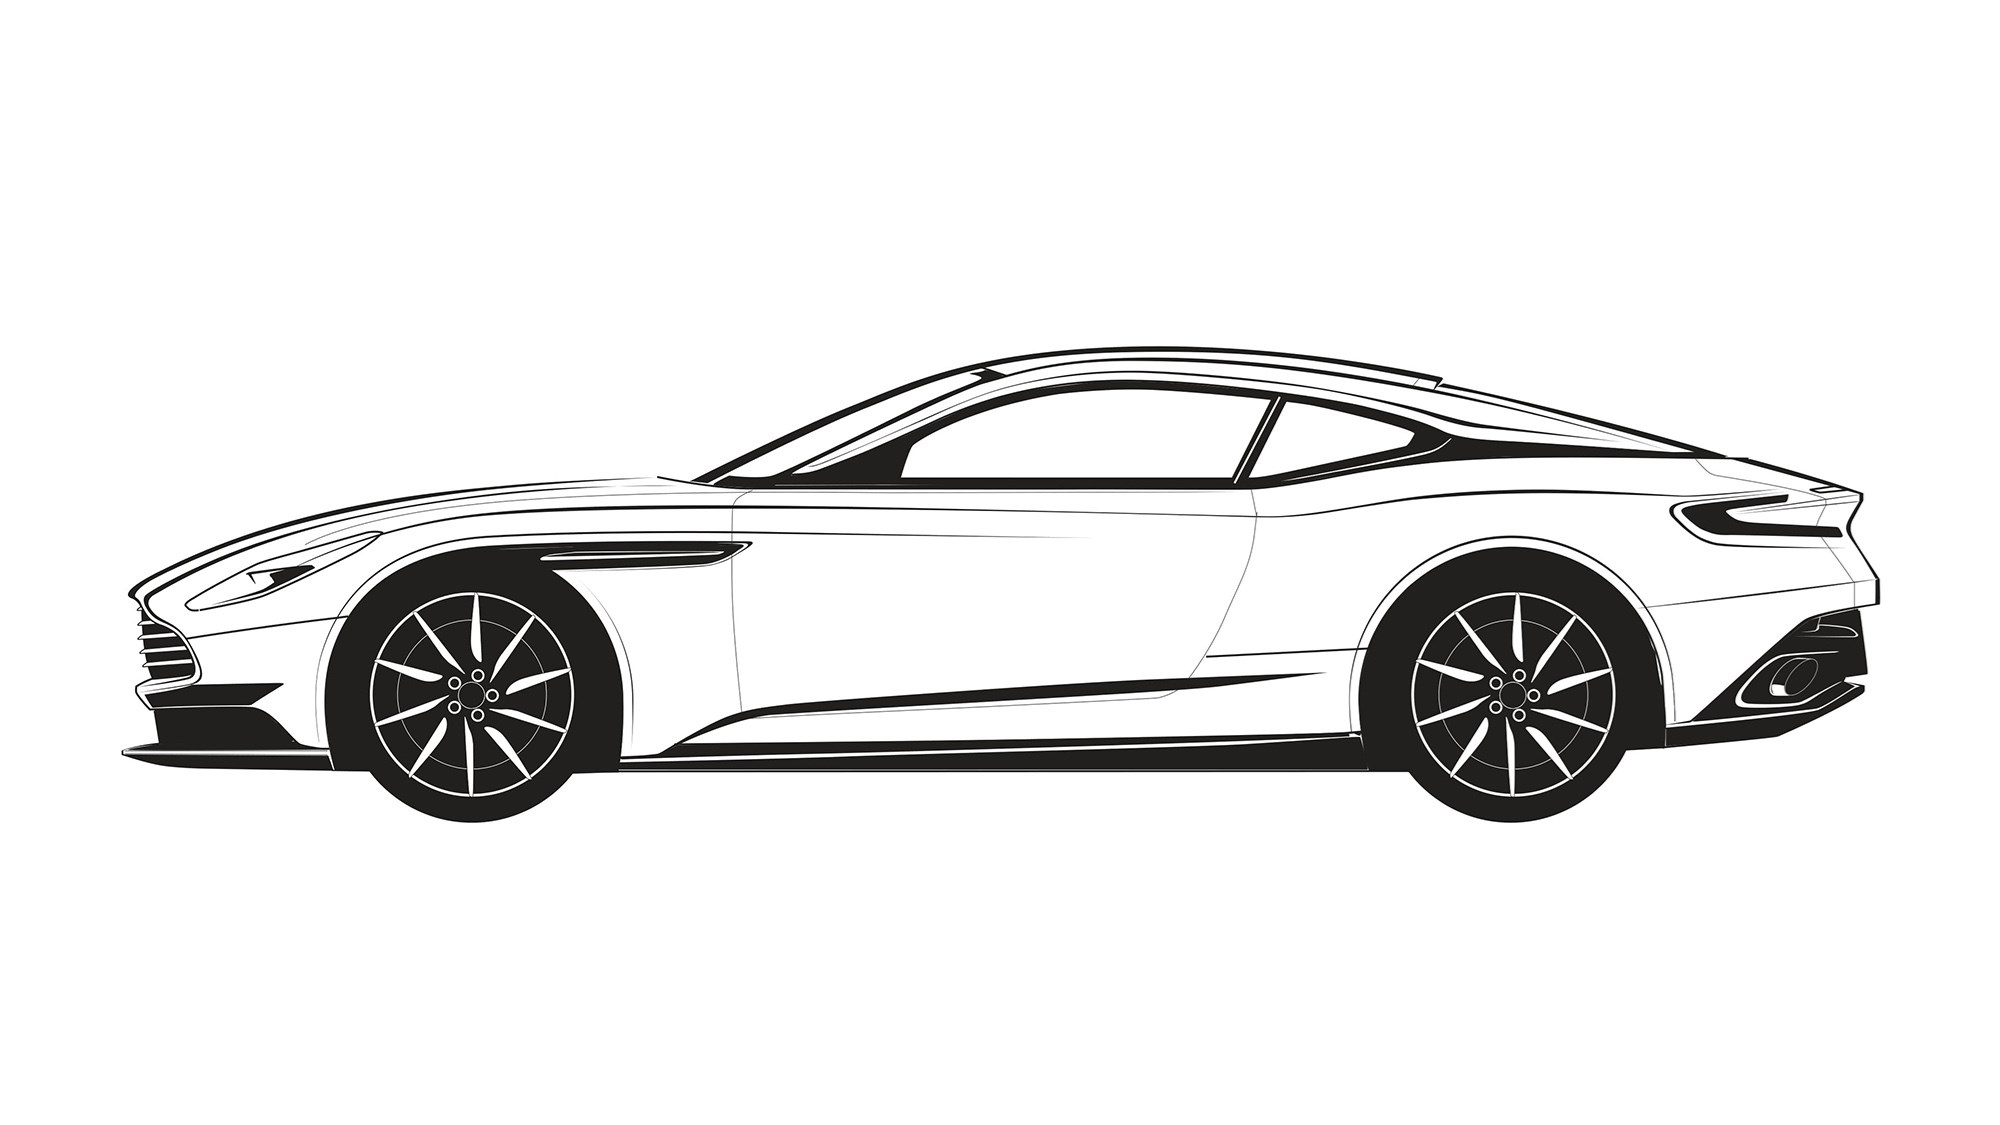 50 Shades Of Cray On The Best Car Colouring Pages For Kids Car Magazine